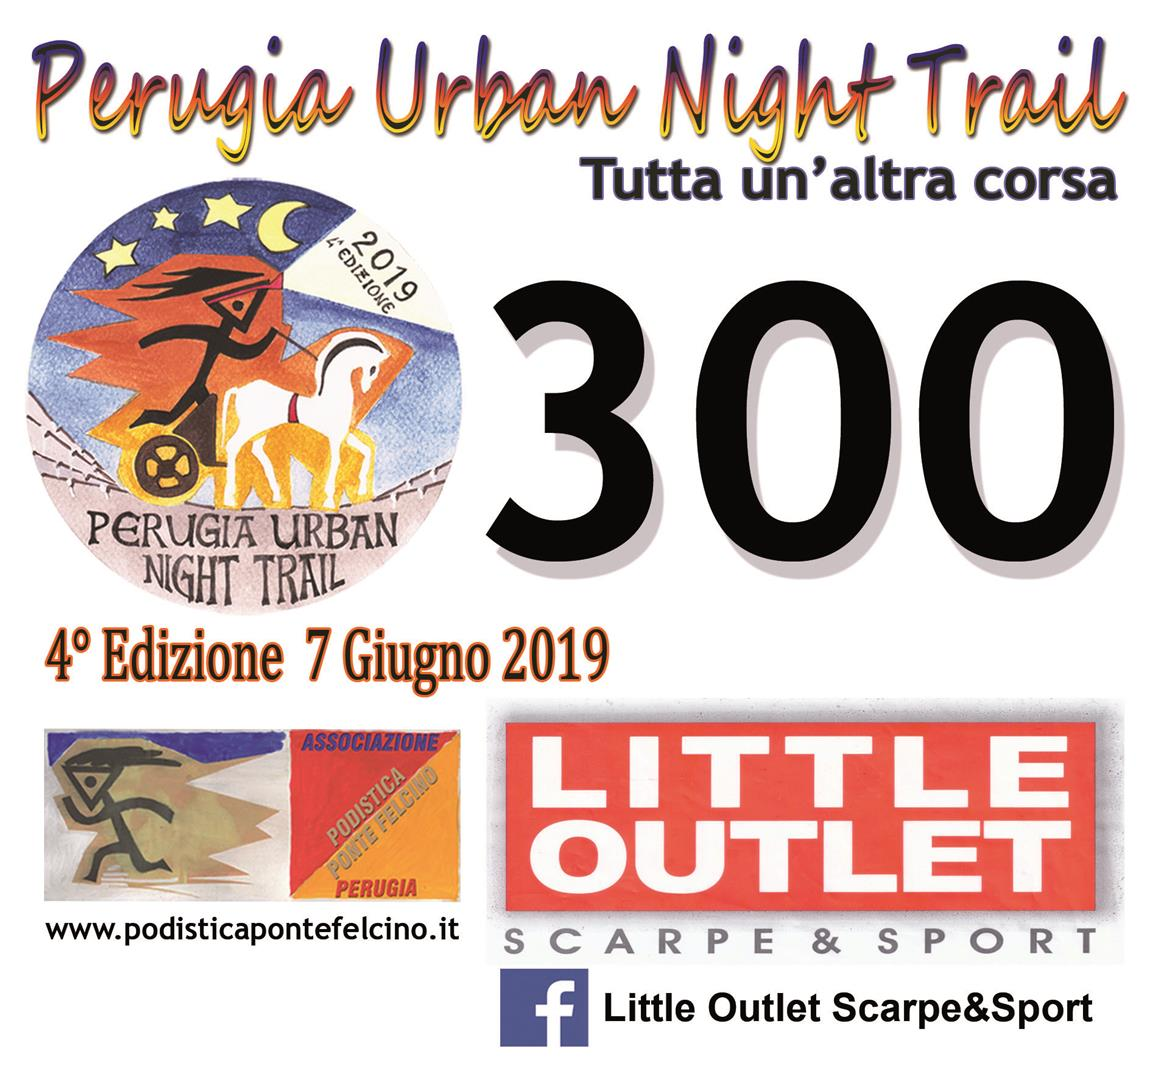 Perugia Urban Night Trail 4° Edizione